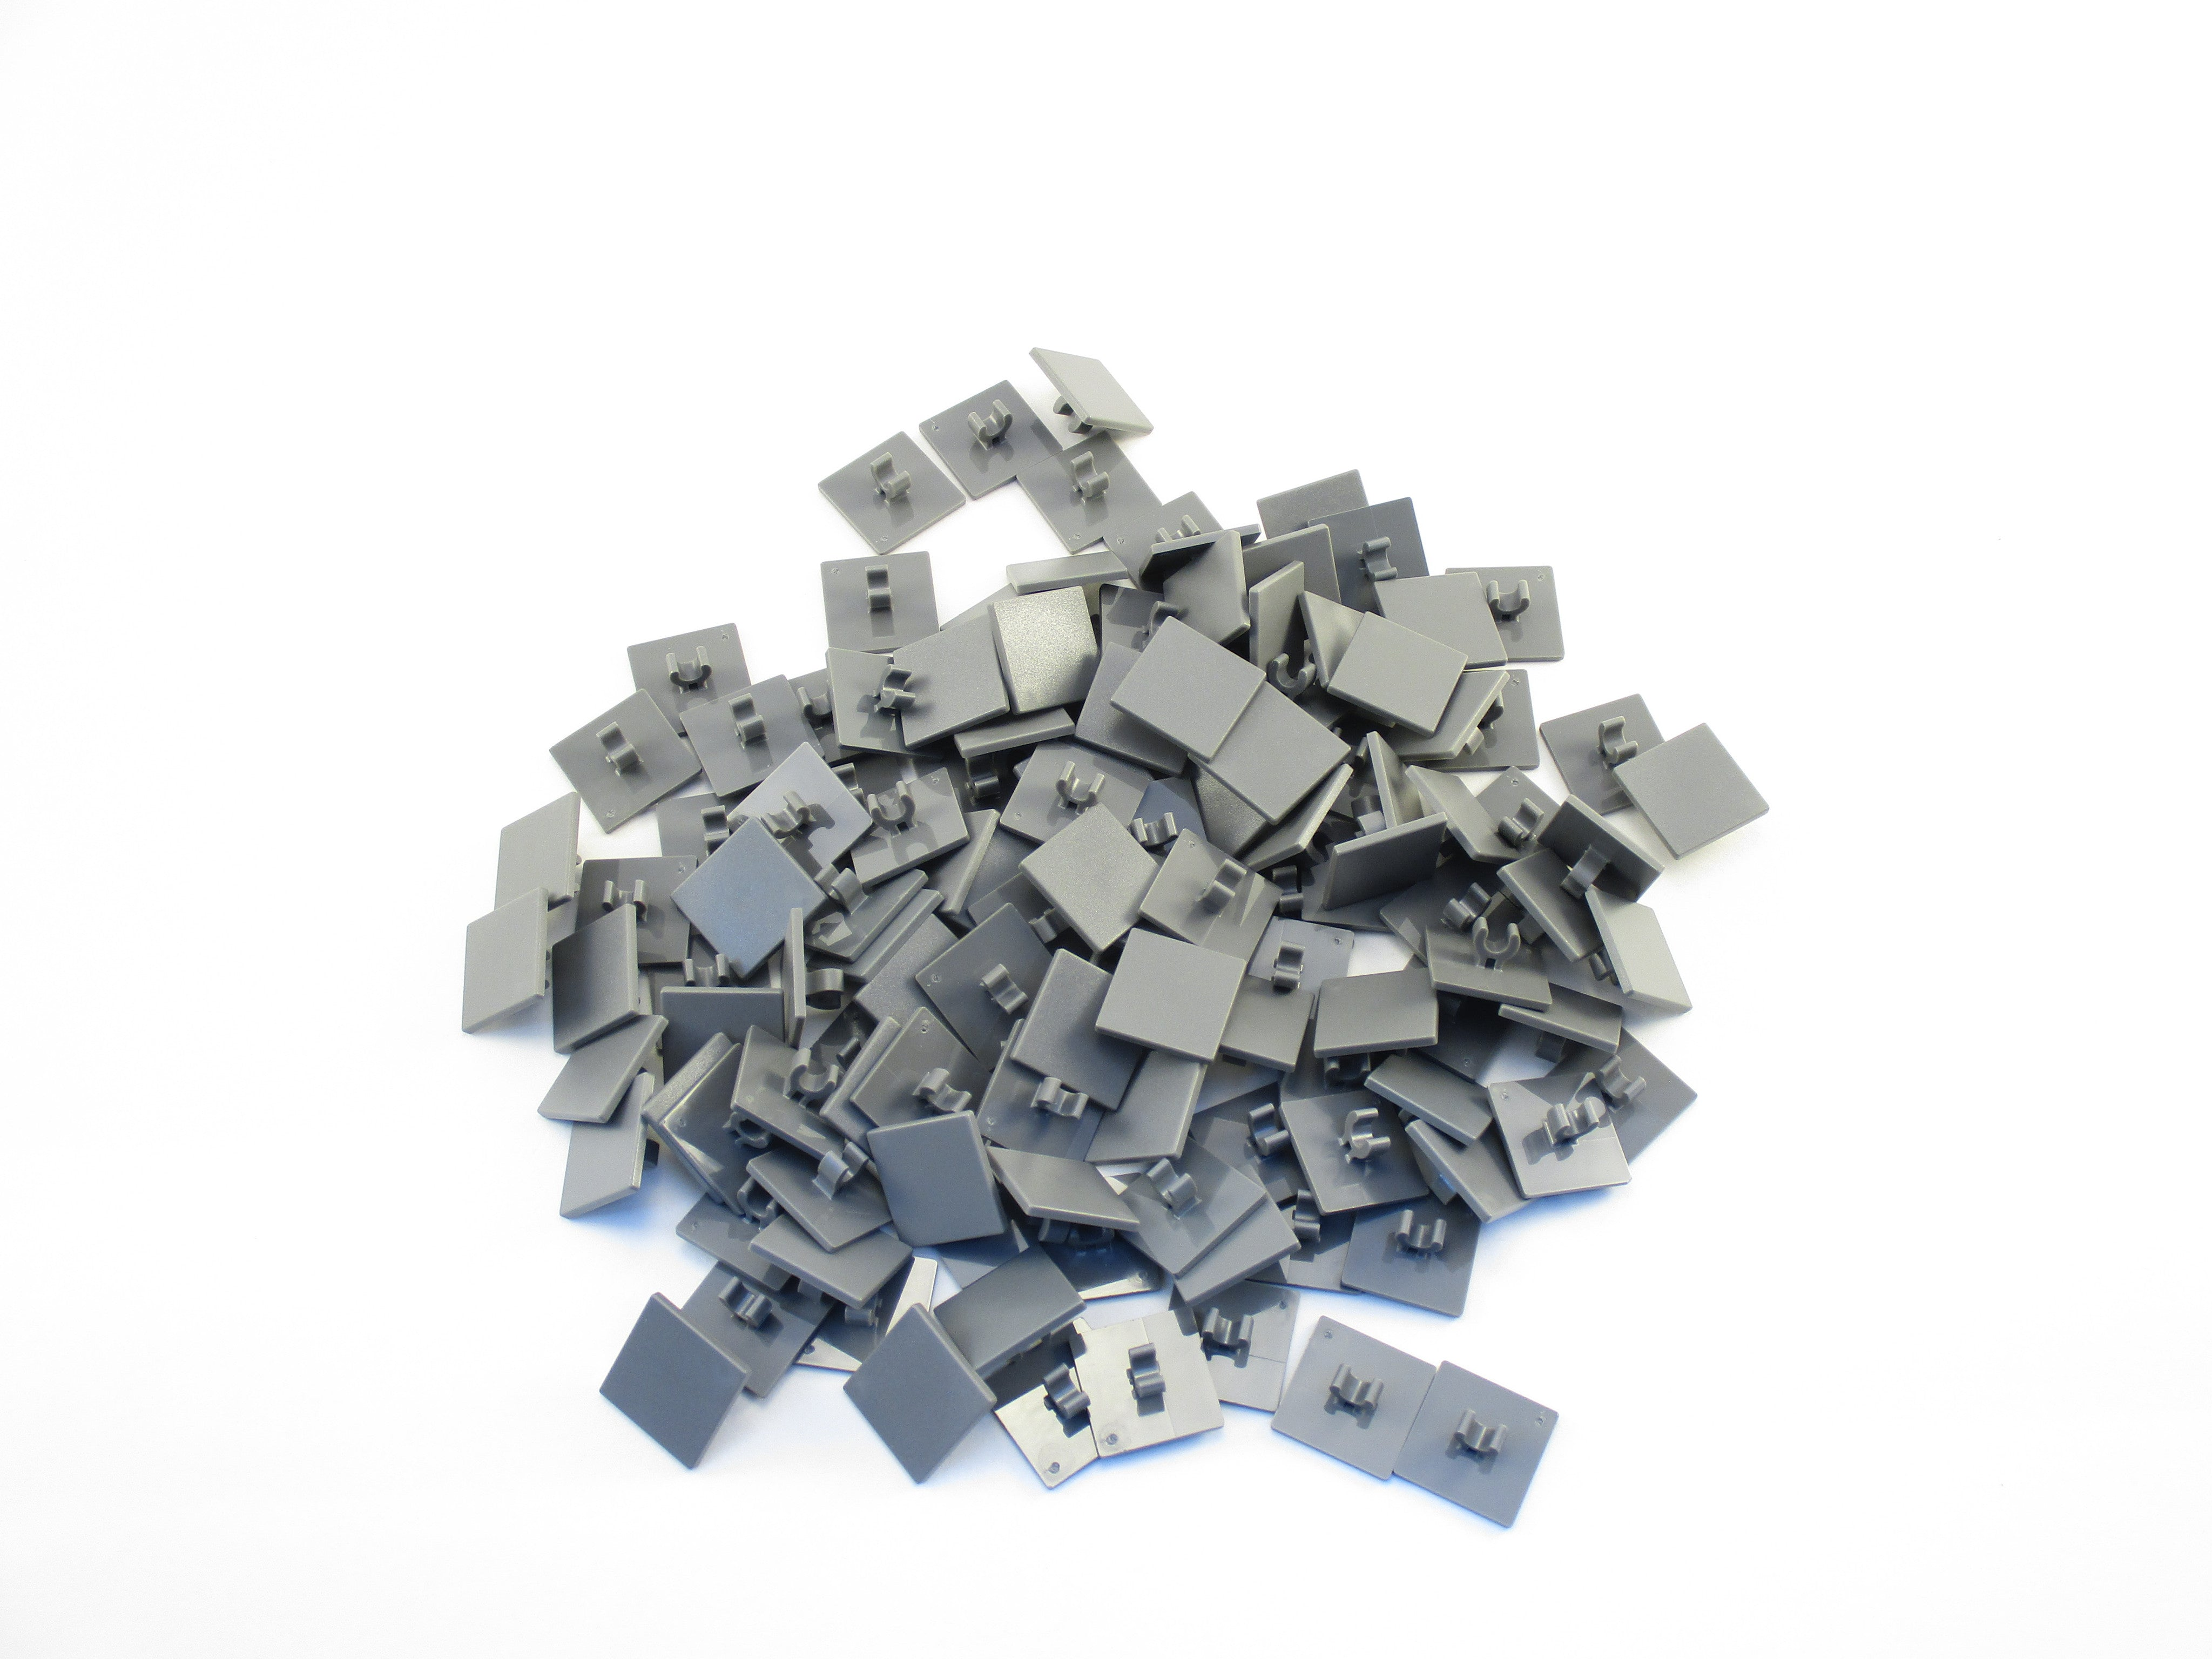 LEGO Dark Bluish Gray Road Sign Clip On 2x2 Square Lot of 50 Parts Pieces 15210